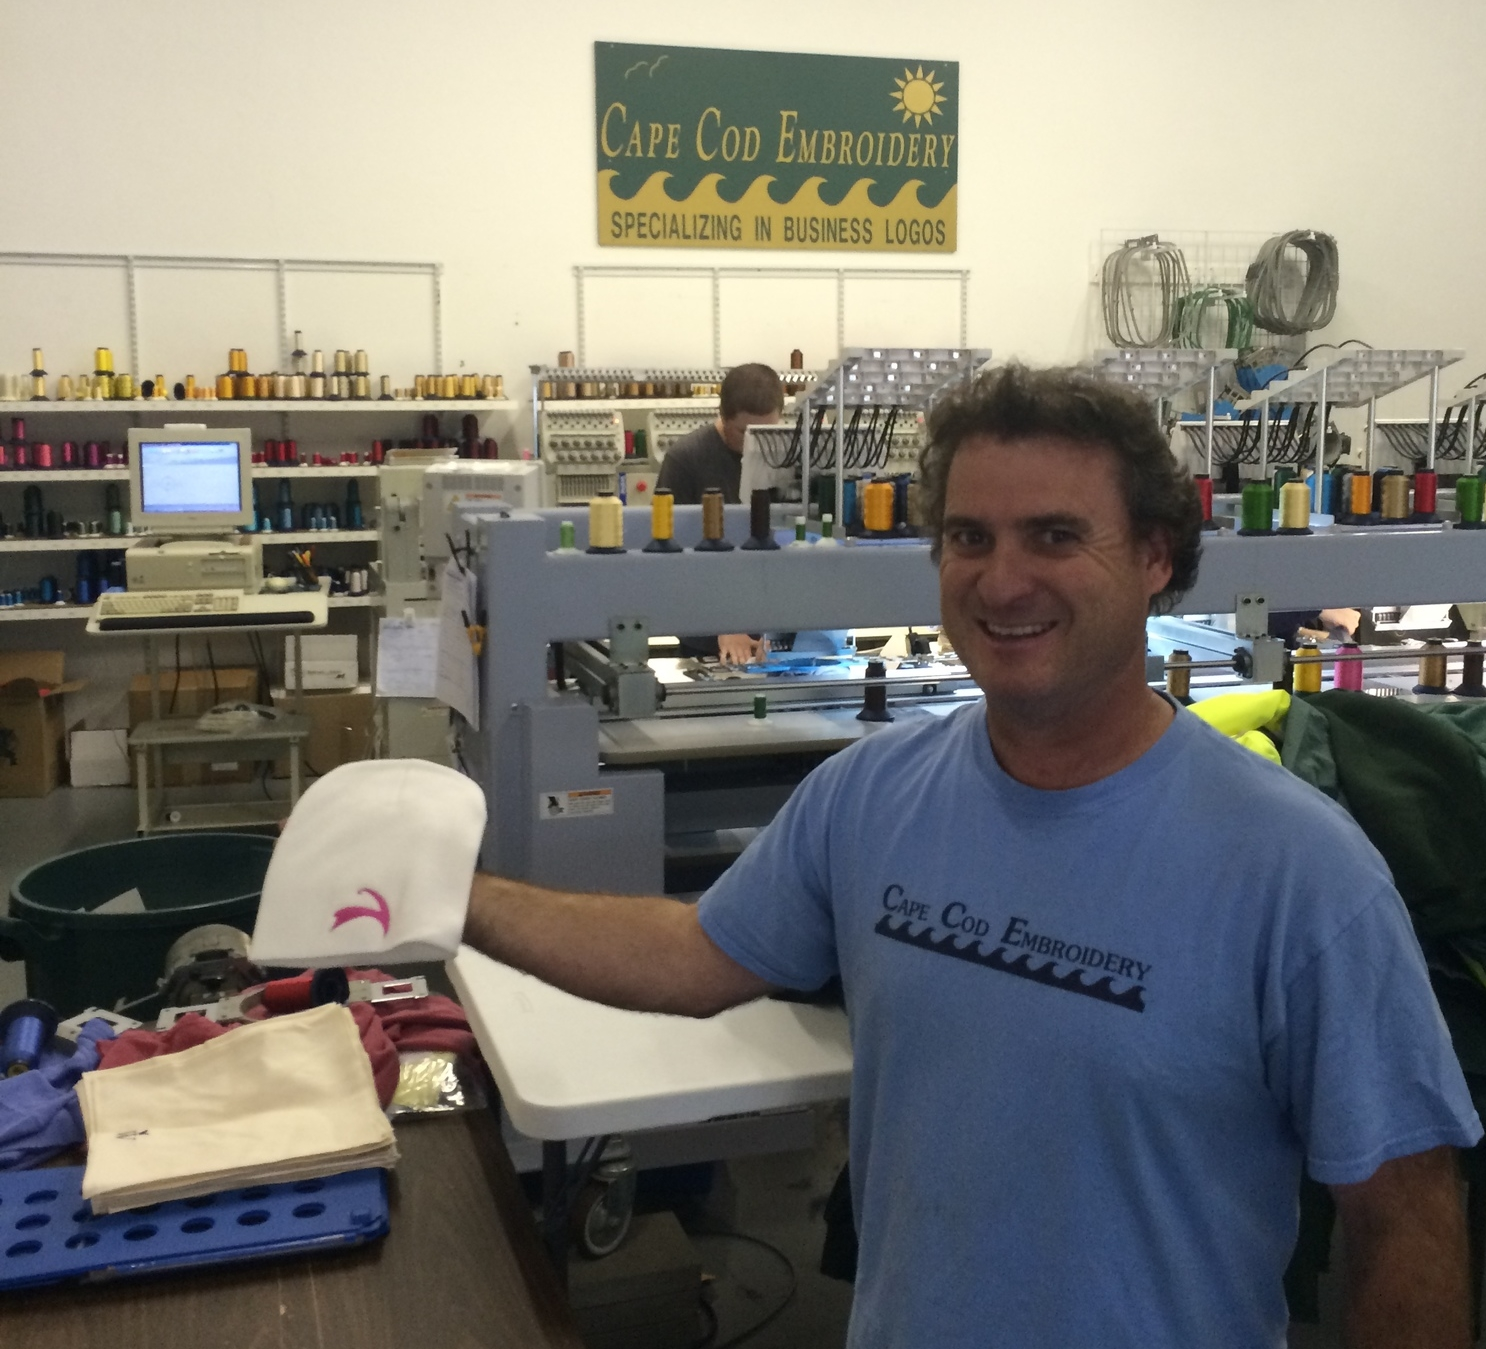 """David Condon, owner of Cape Cod Embroidery, showing off the """"Offseason"""" winter hat. Cape Cloth supports Cape Cod business!"""